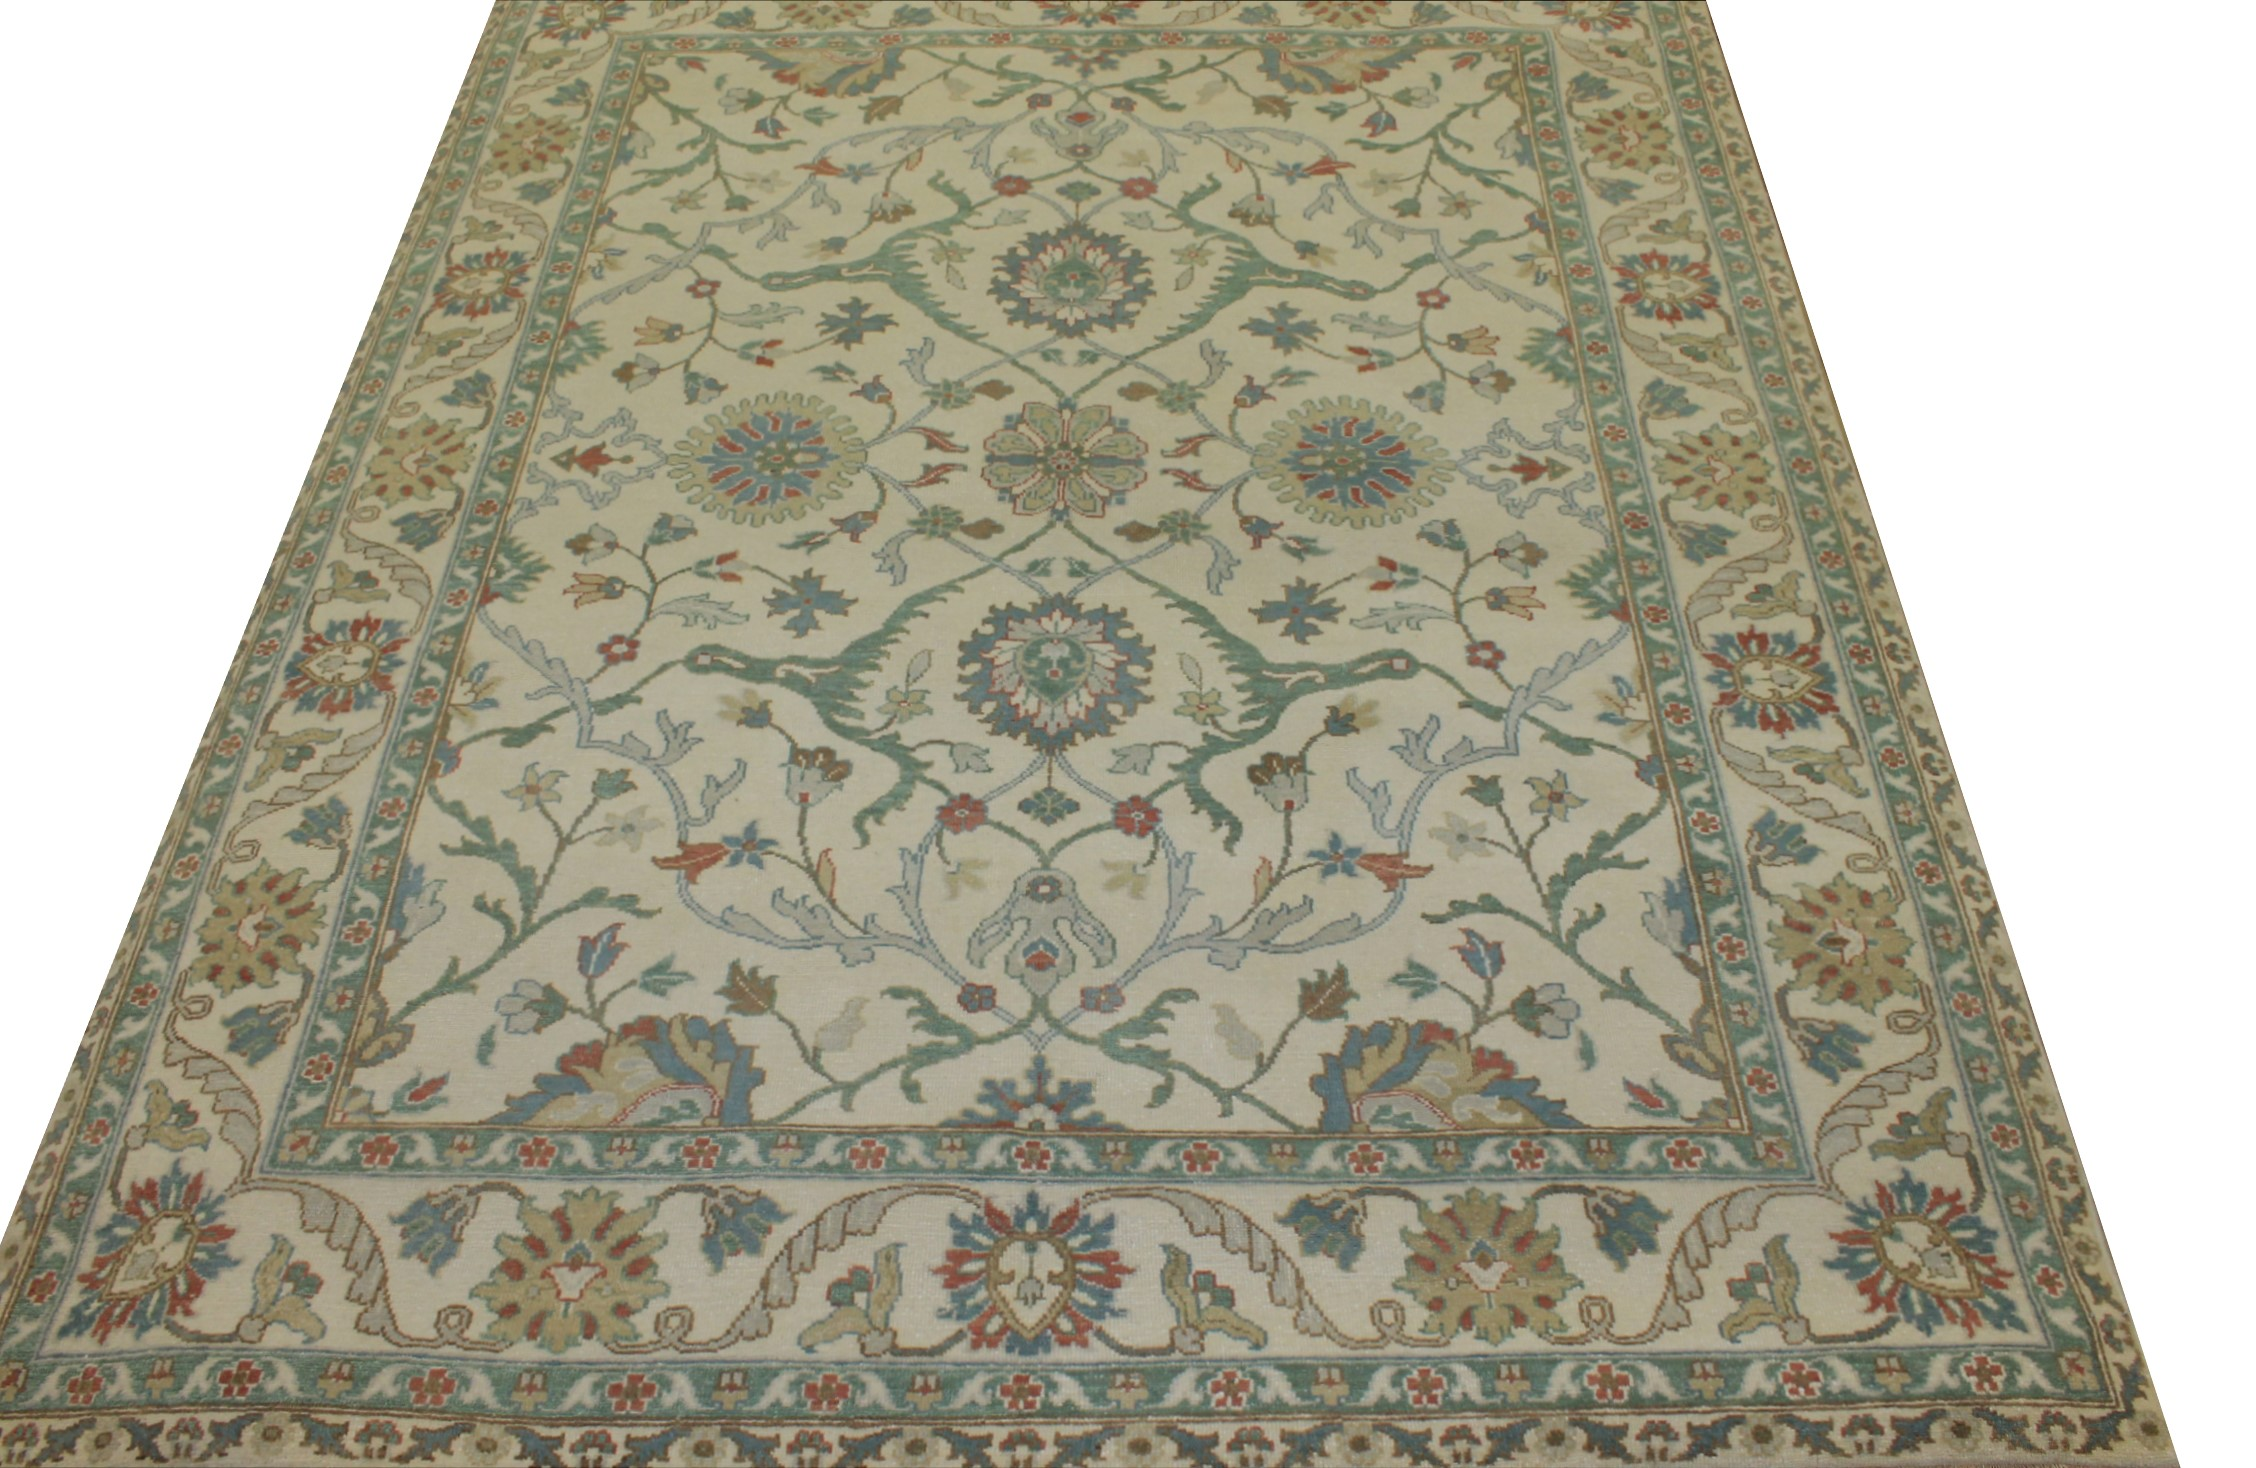 8x10 Oushak Hand Knotted Wool Area Rug - MR17238